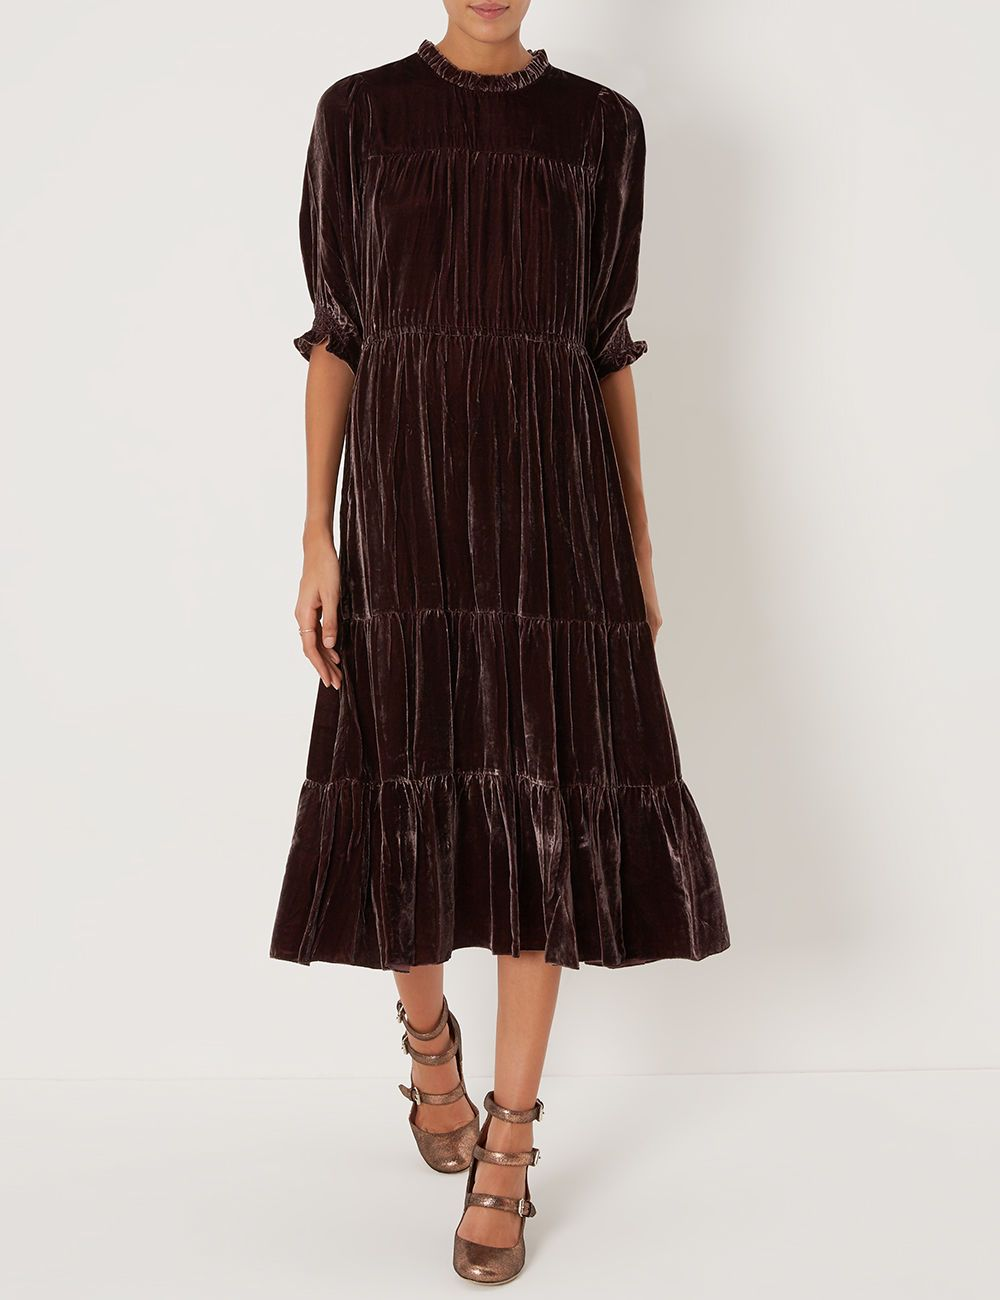 Mulberry Velvet Tiered Paulina Dress By Ulla Johnson From Avenue 32